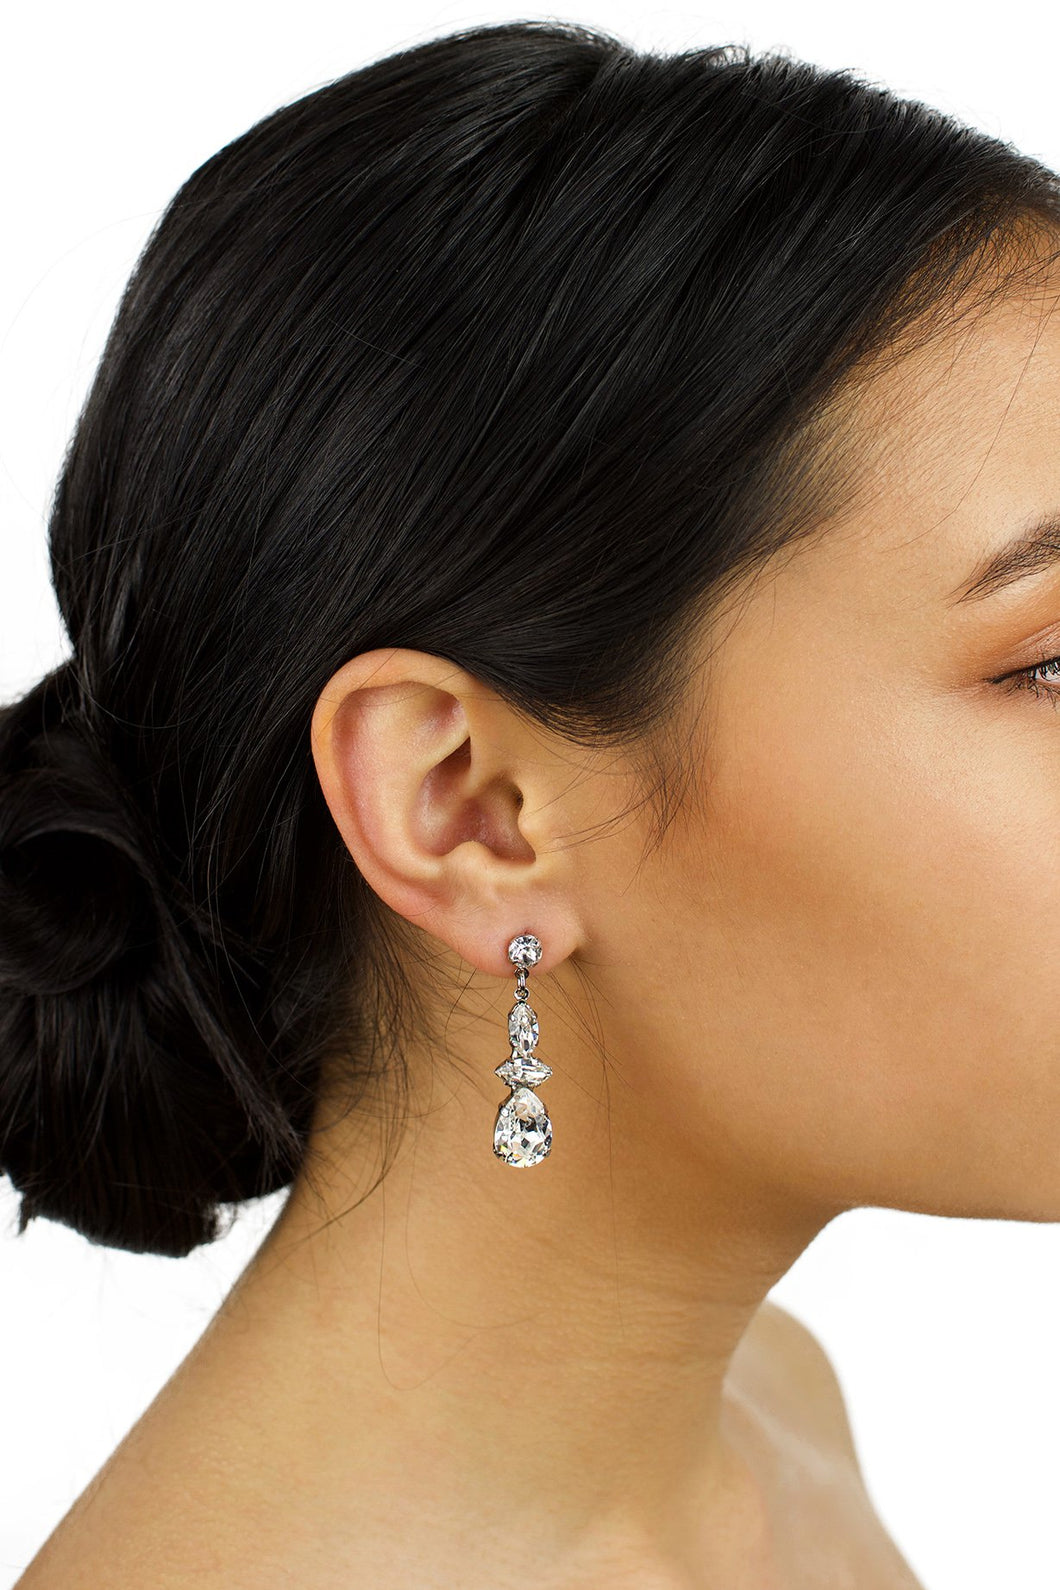 Dark hair model wearing a short Swarovski Crystal drop earring with a white background